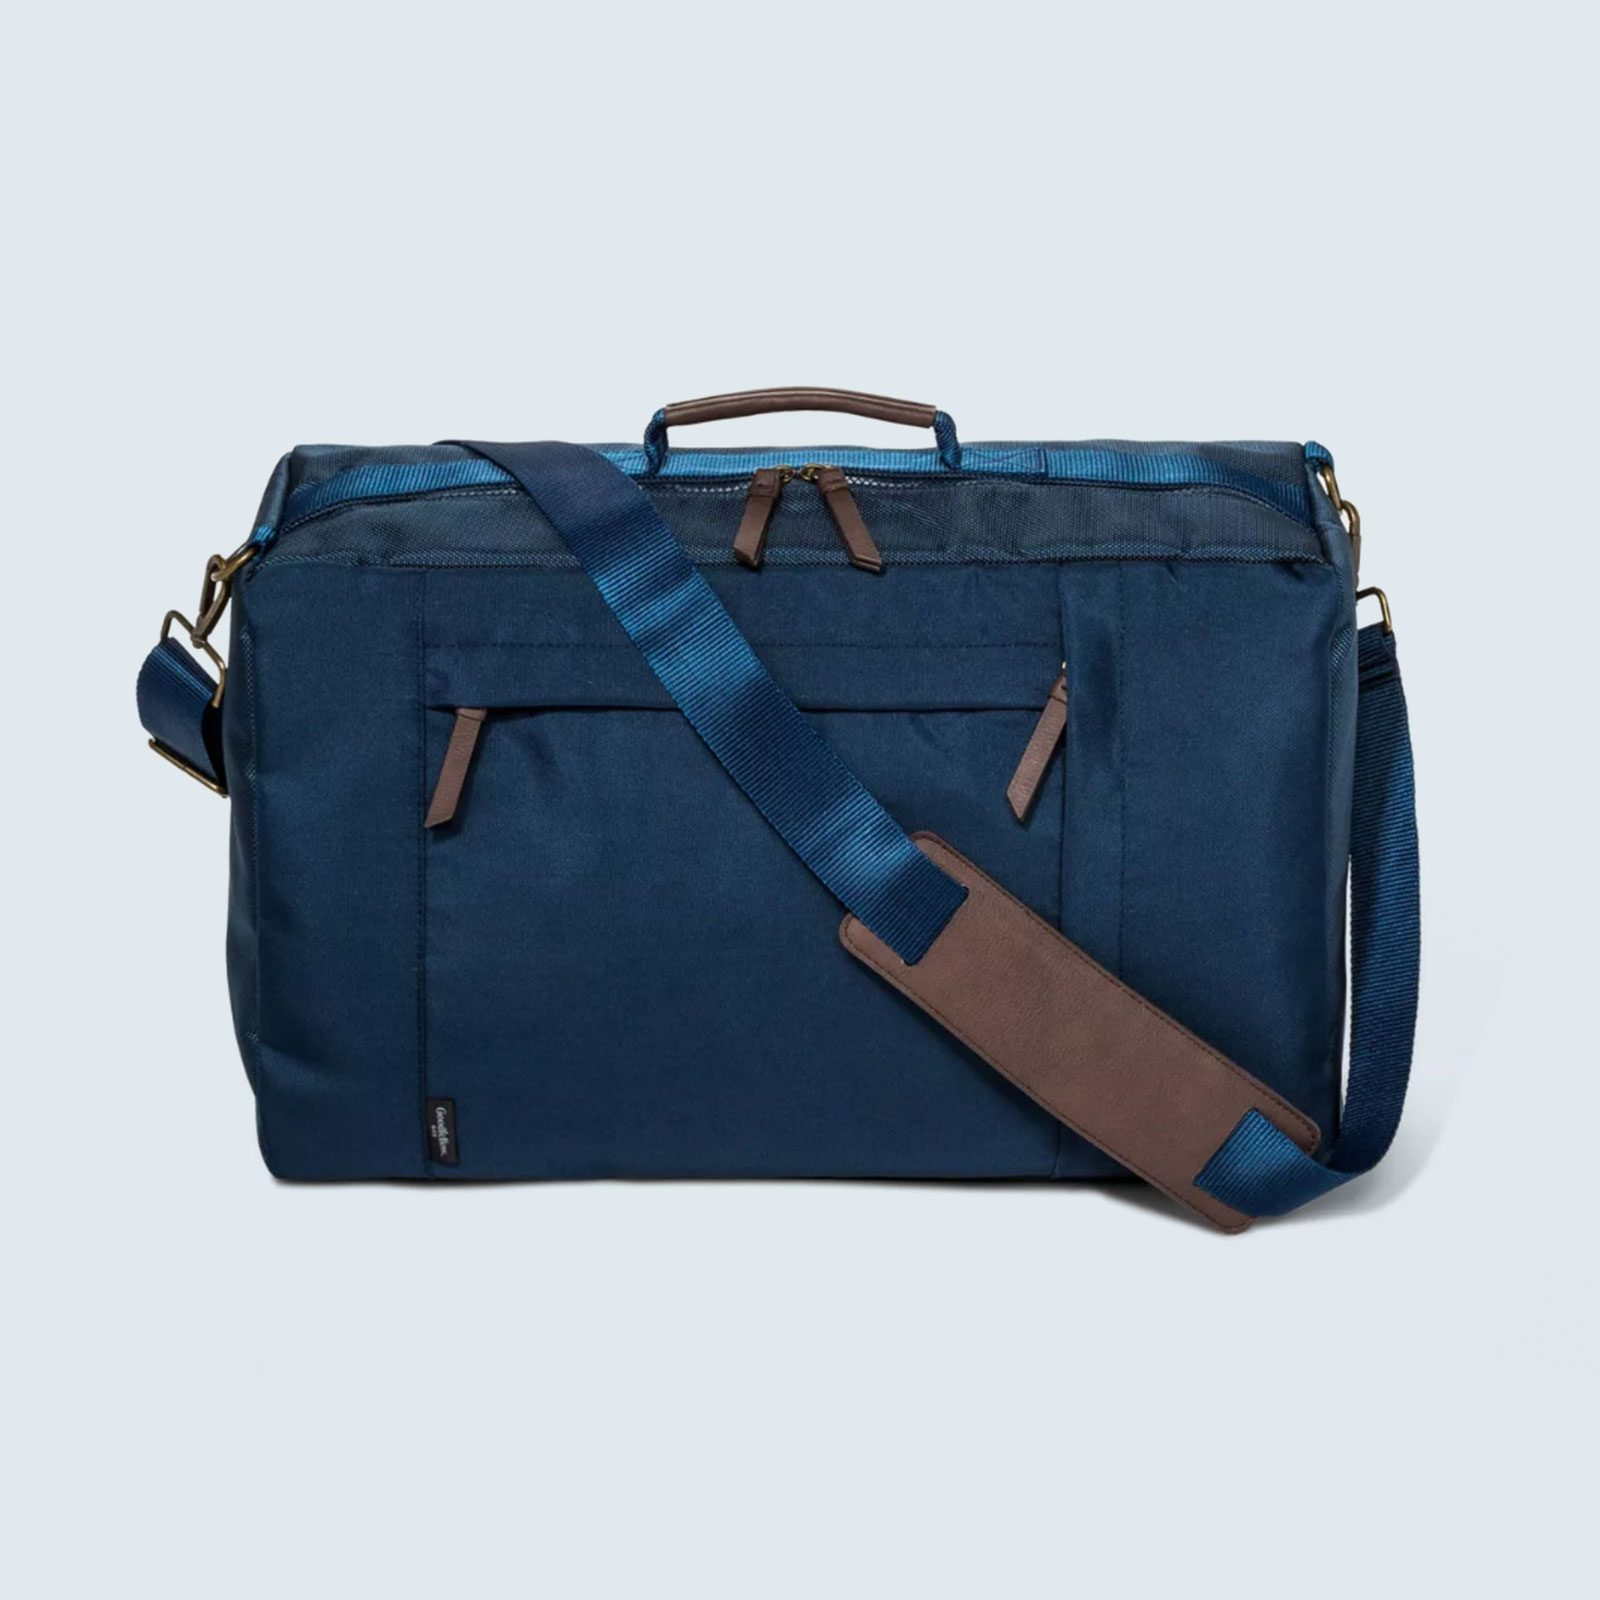 Goodfellow & Co. 3-in-1 Backpack